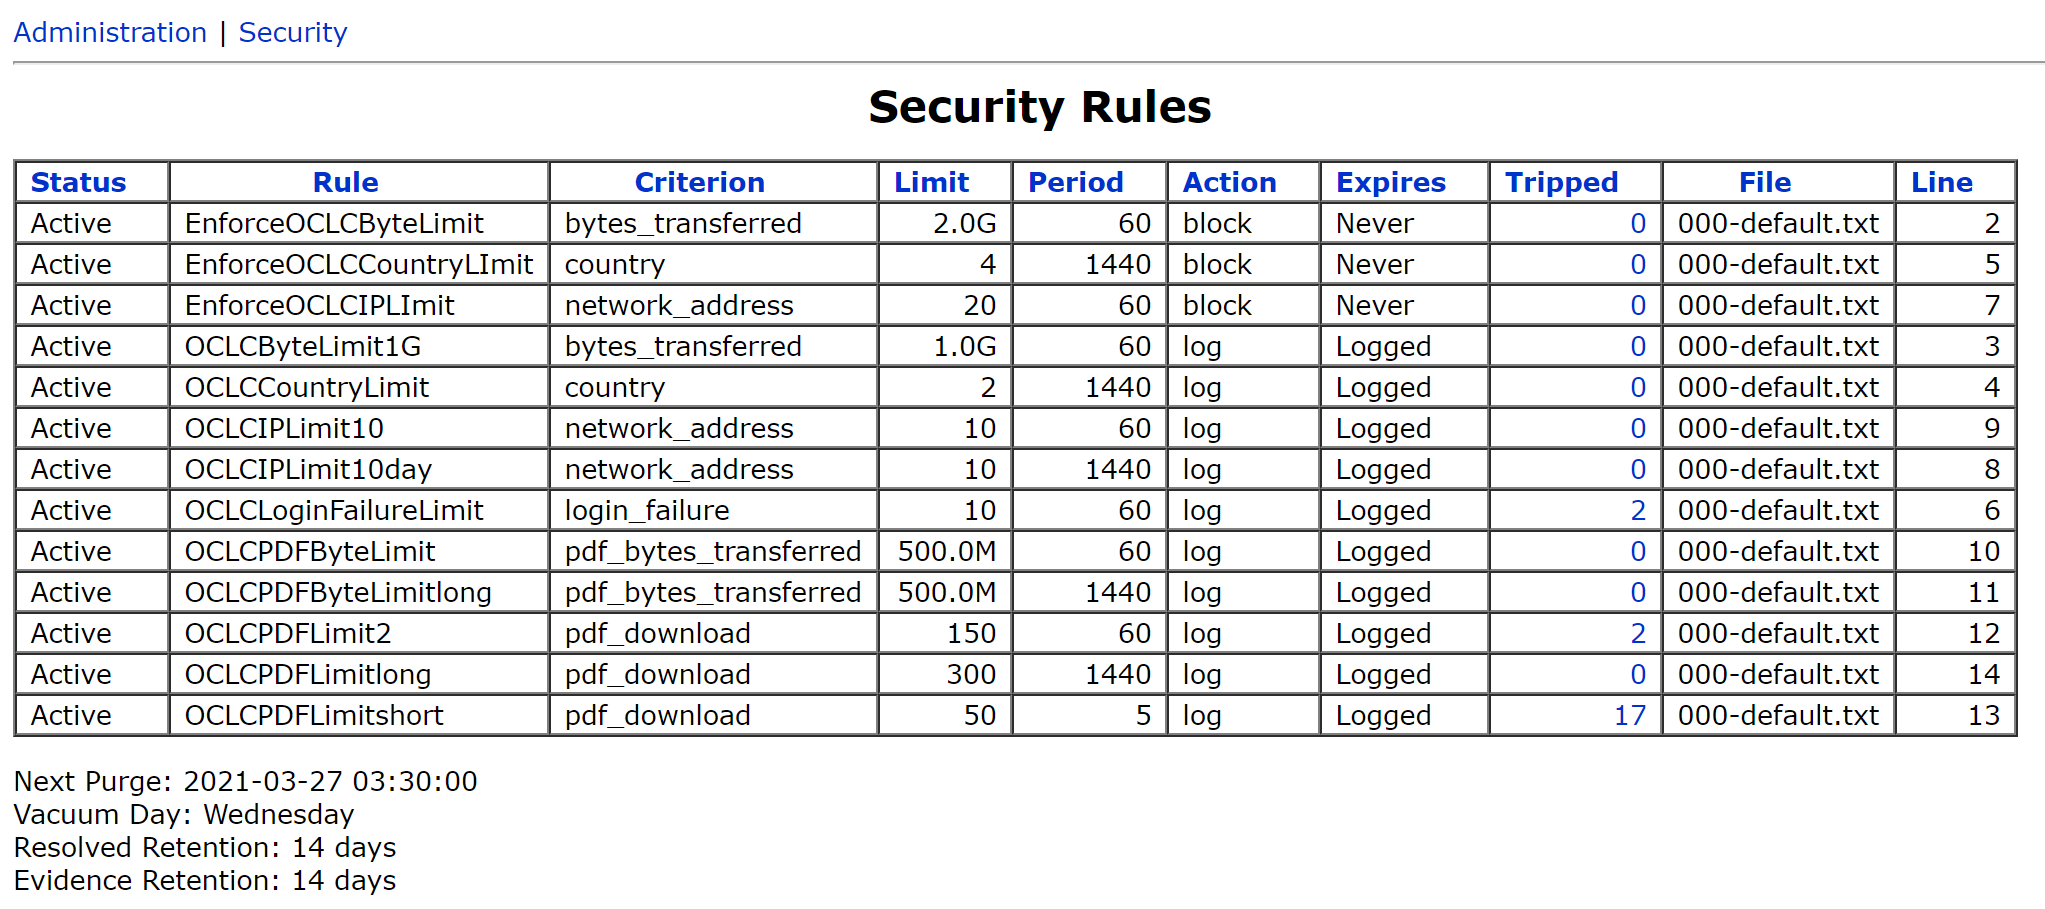 Screenshot of security rules table